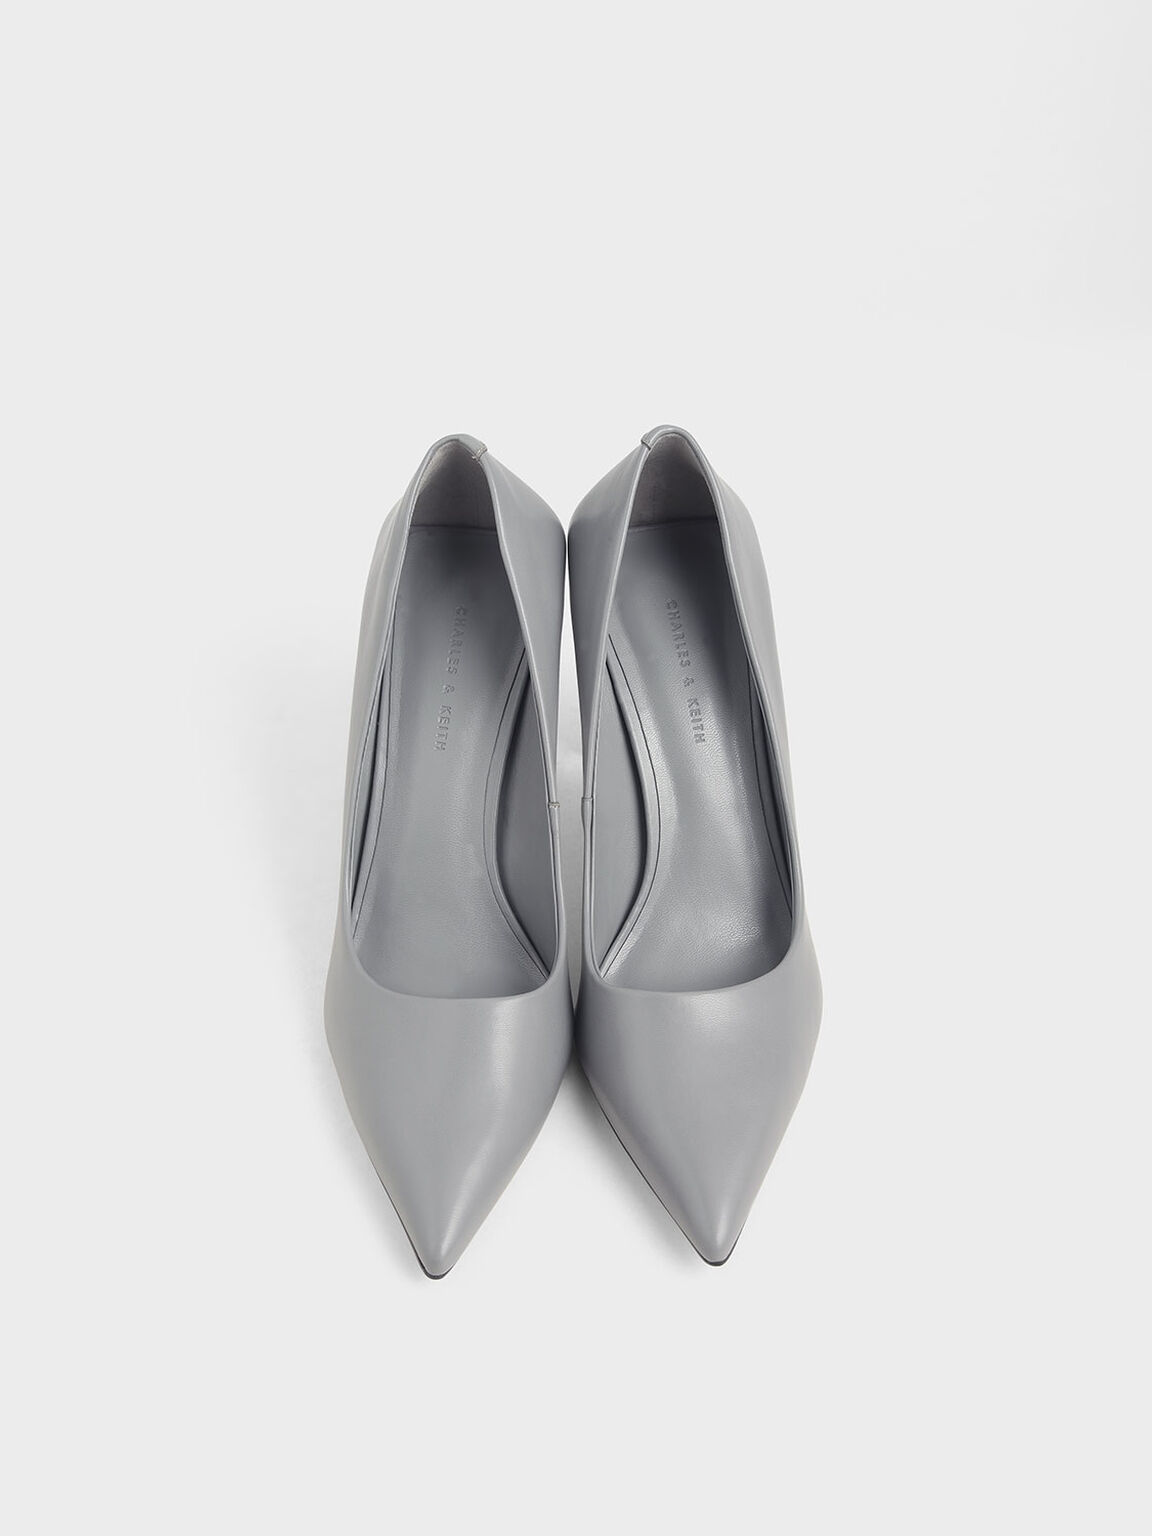 Blade Heel Pumps, Grey, hi-res